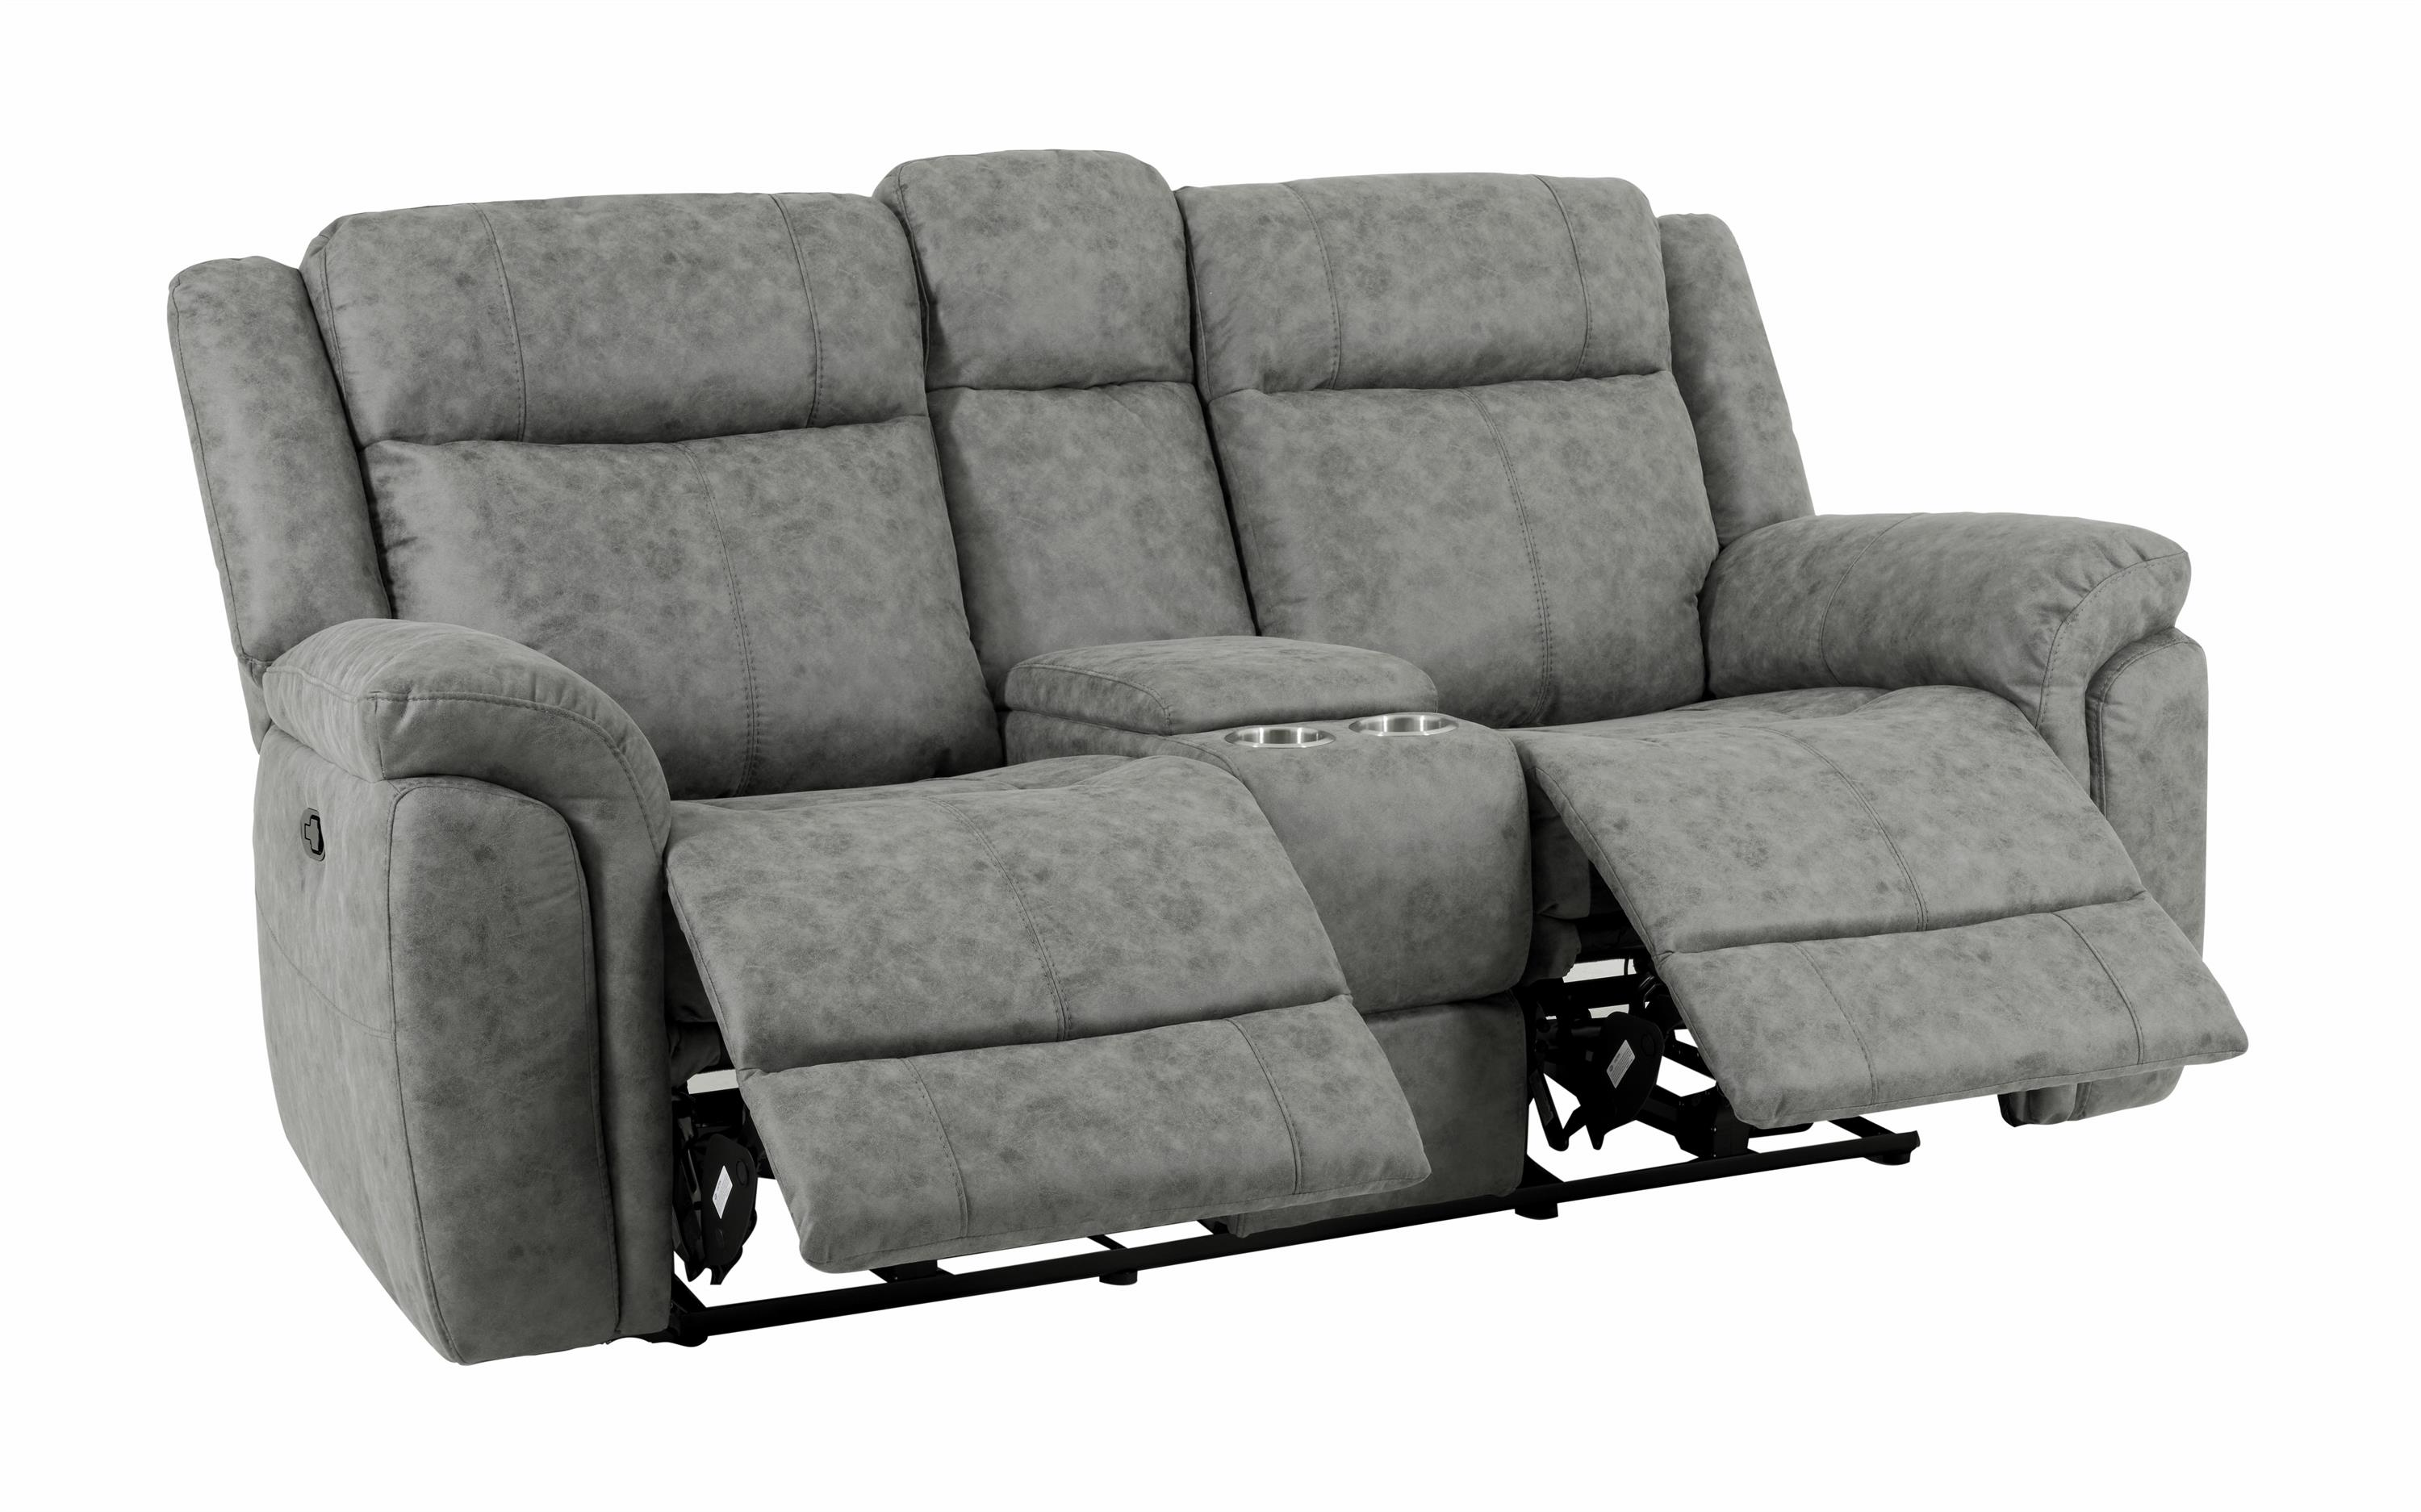 Endurance Myst 2 Seater Manual Recliner Sofa With Console, , large